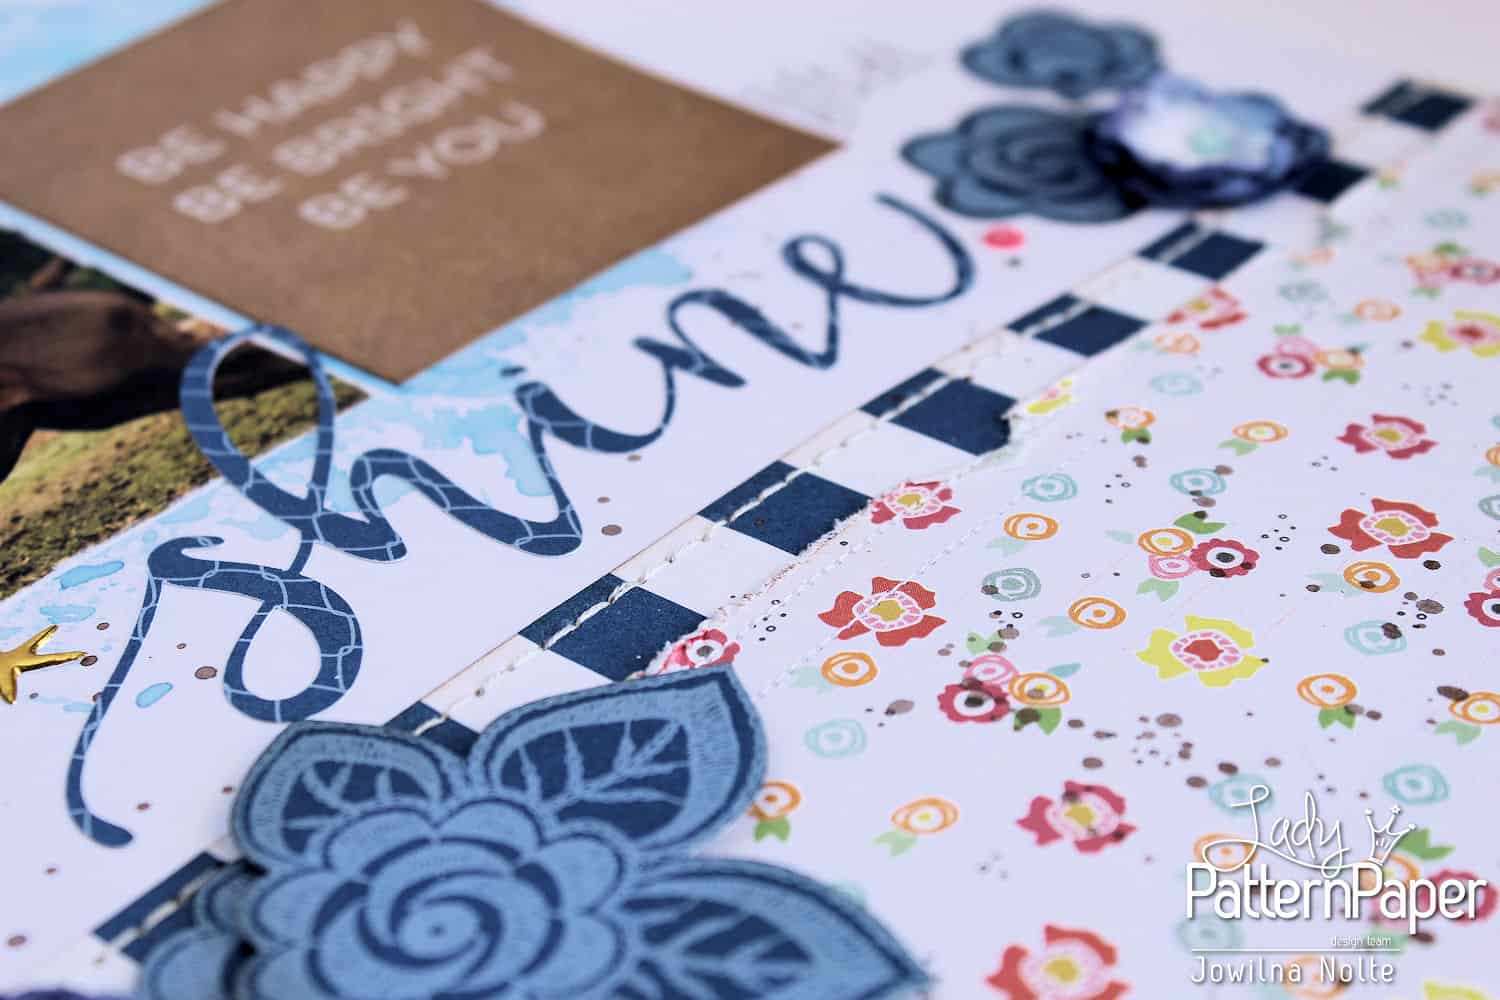 Dazzling Blue Die-Cut Elements - Shine